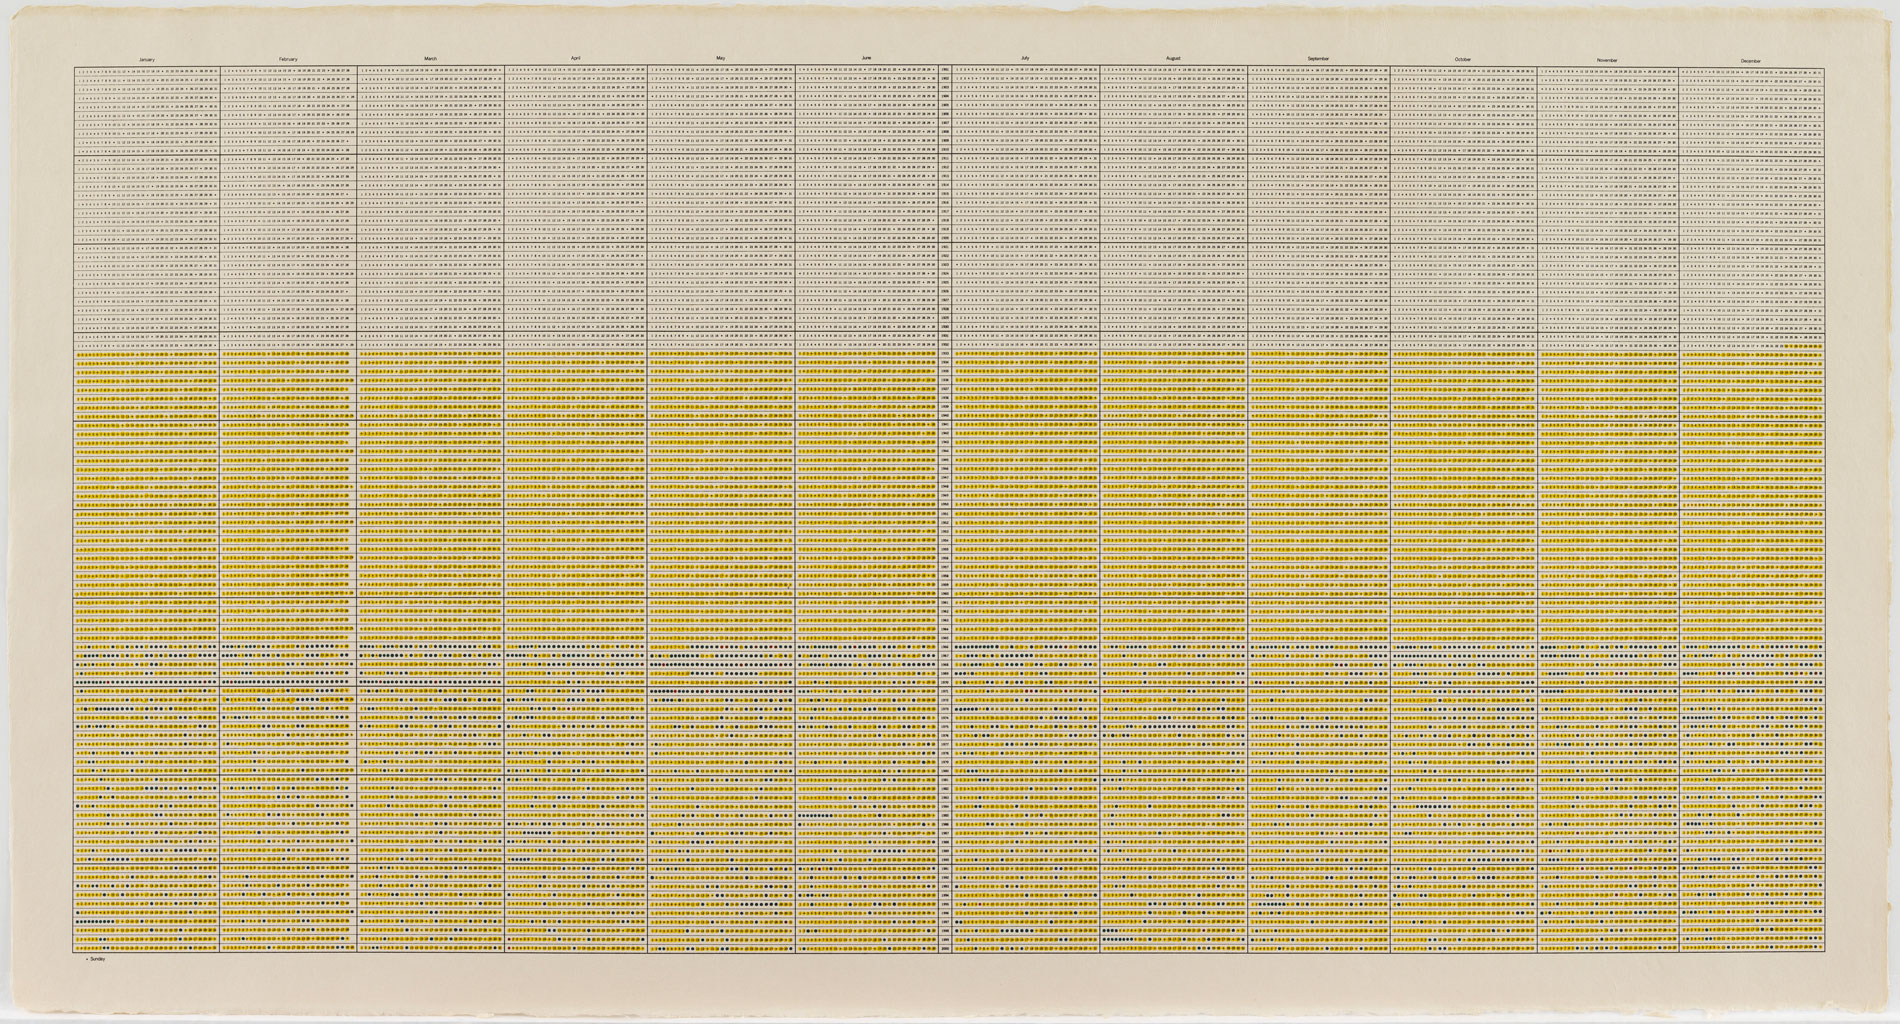 "On Kawara, One Hundred Years Calender – 20th Century ""24,845 days"", 2000, 68,6 x 129,5 cm; MMK Museum für Moderne Kunst Frankfurt am Main; © MMK/OMY Foundation"